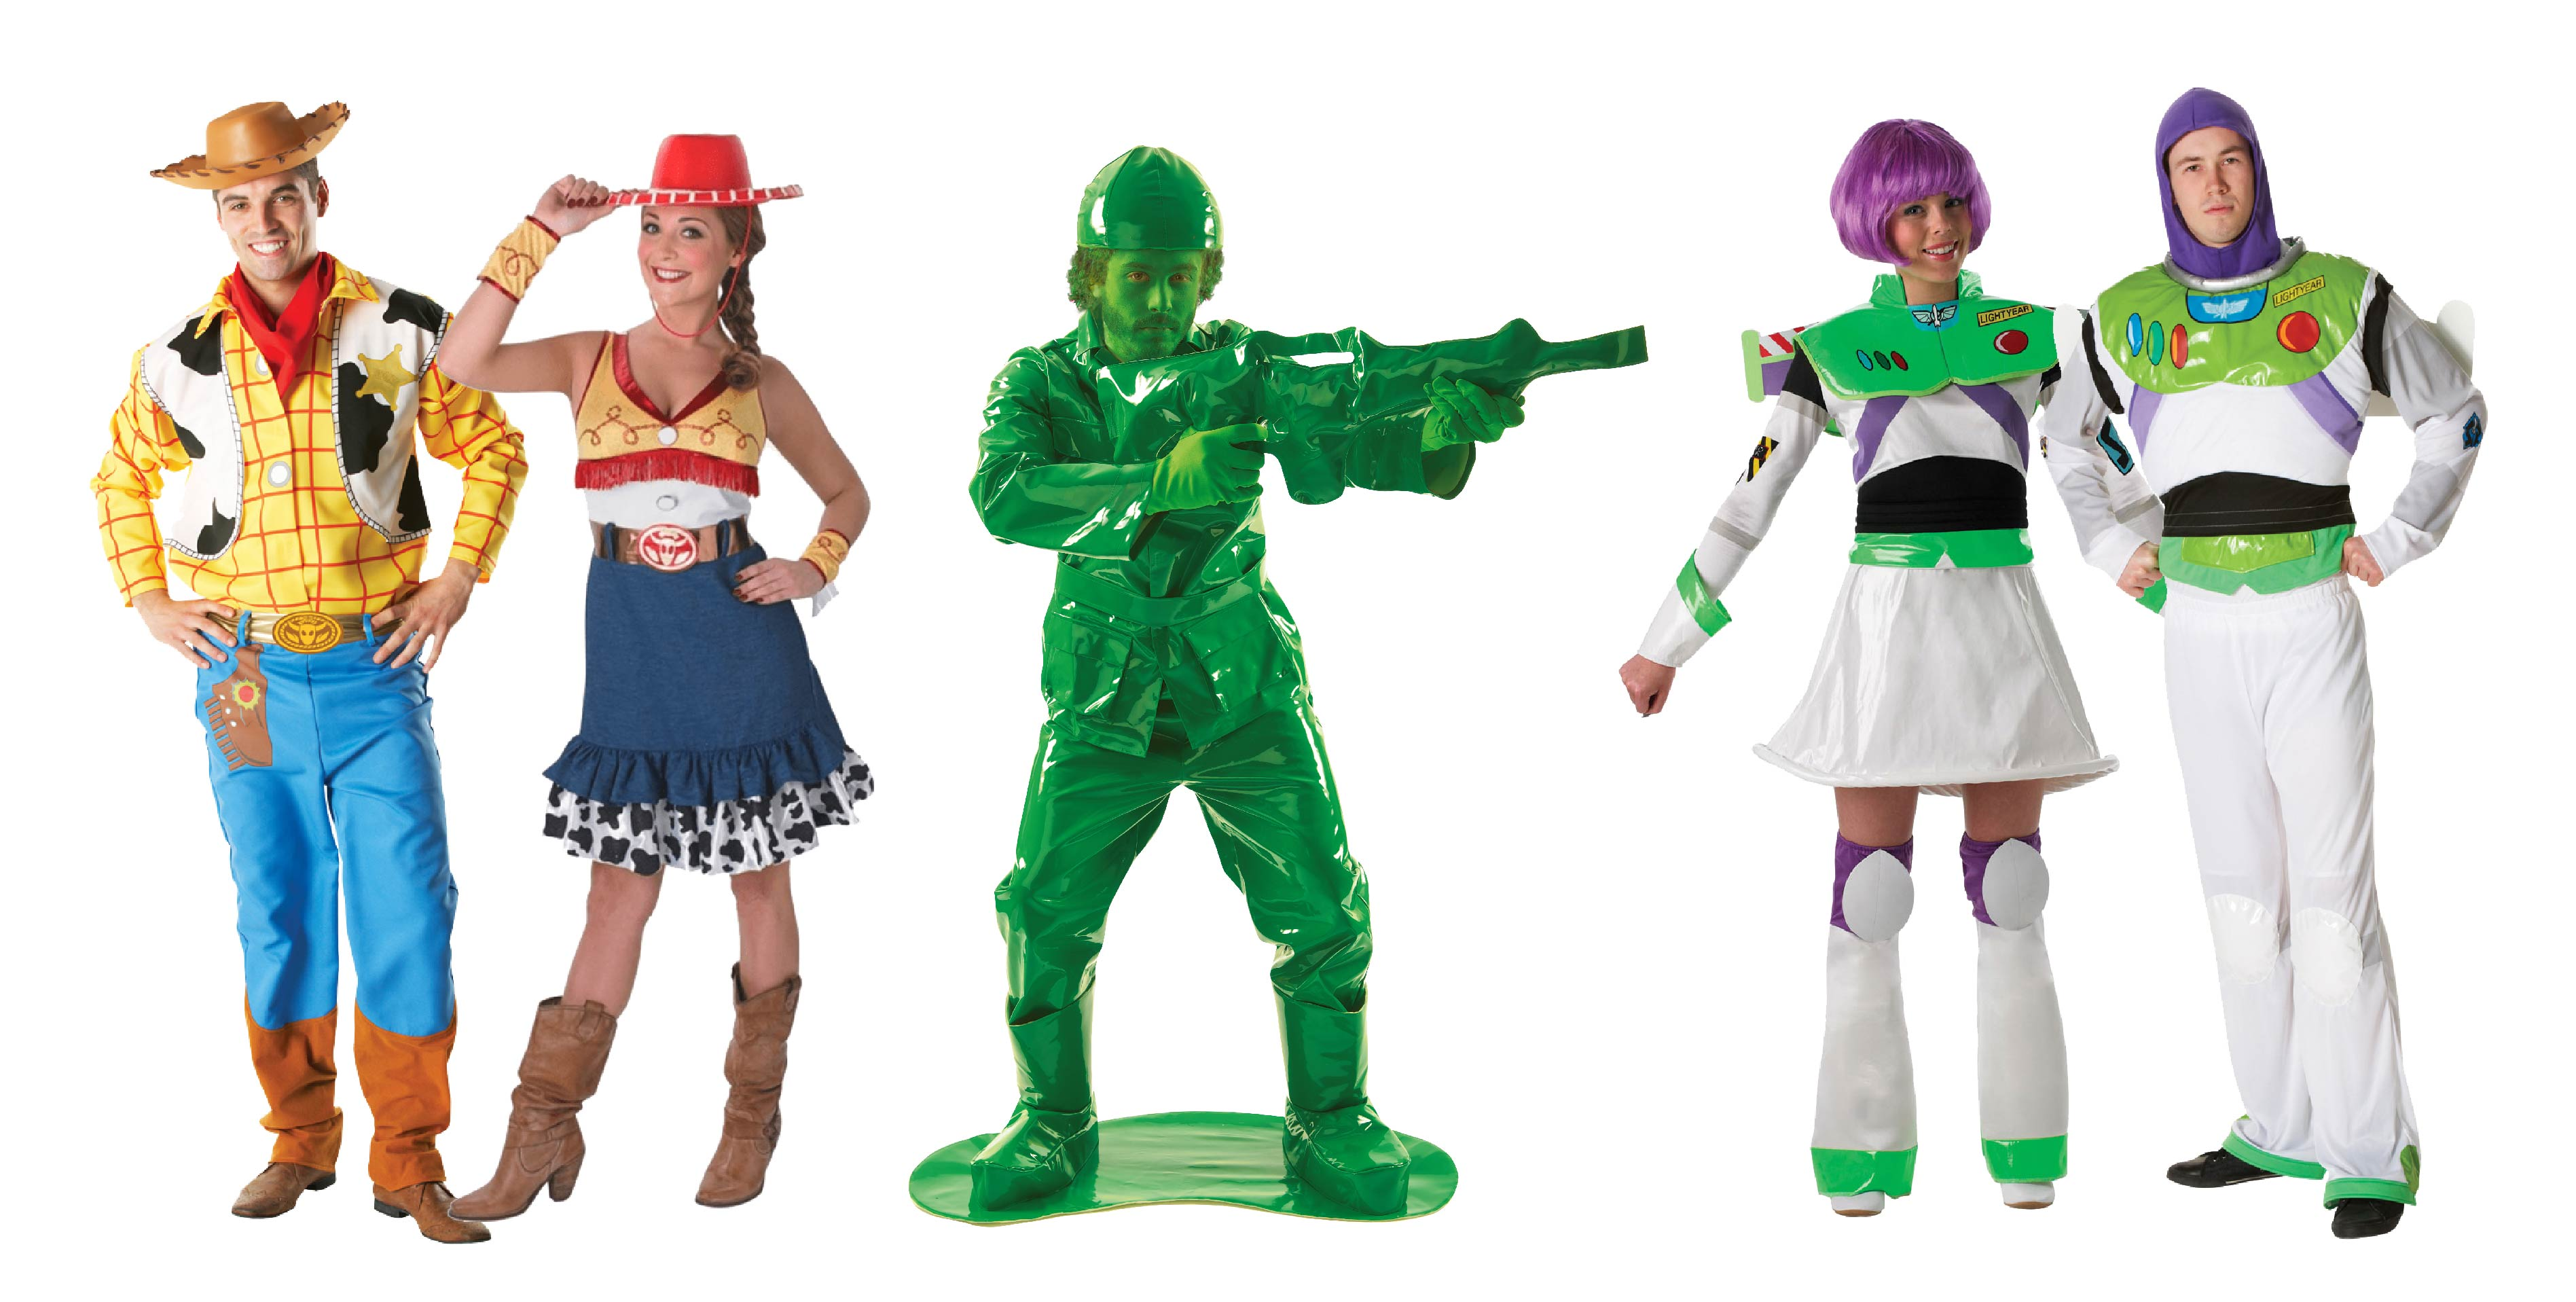 Adults wearing group Toy Story costumes by Disney.